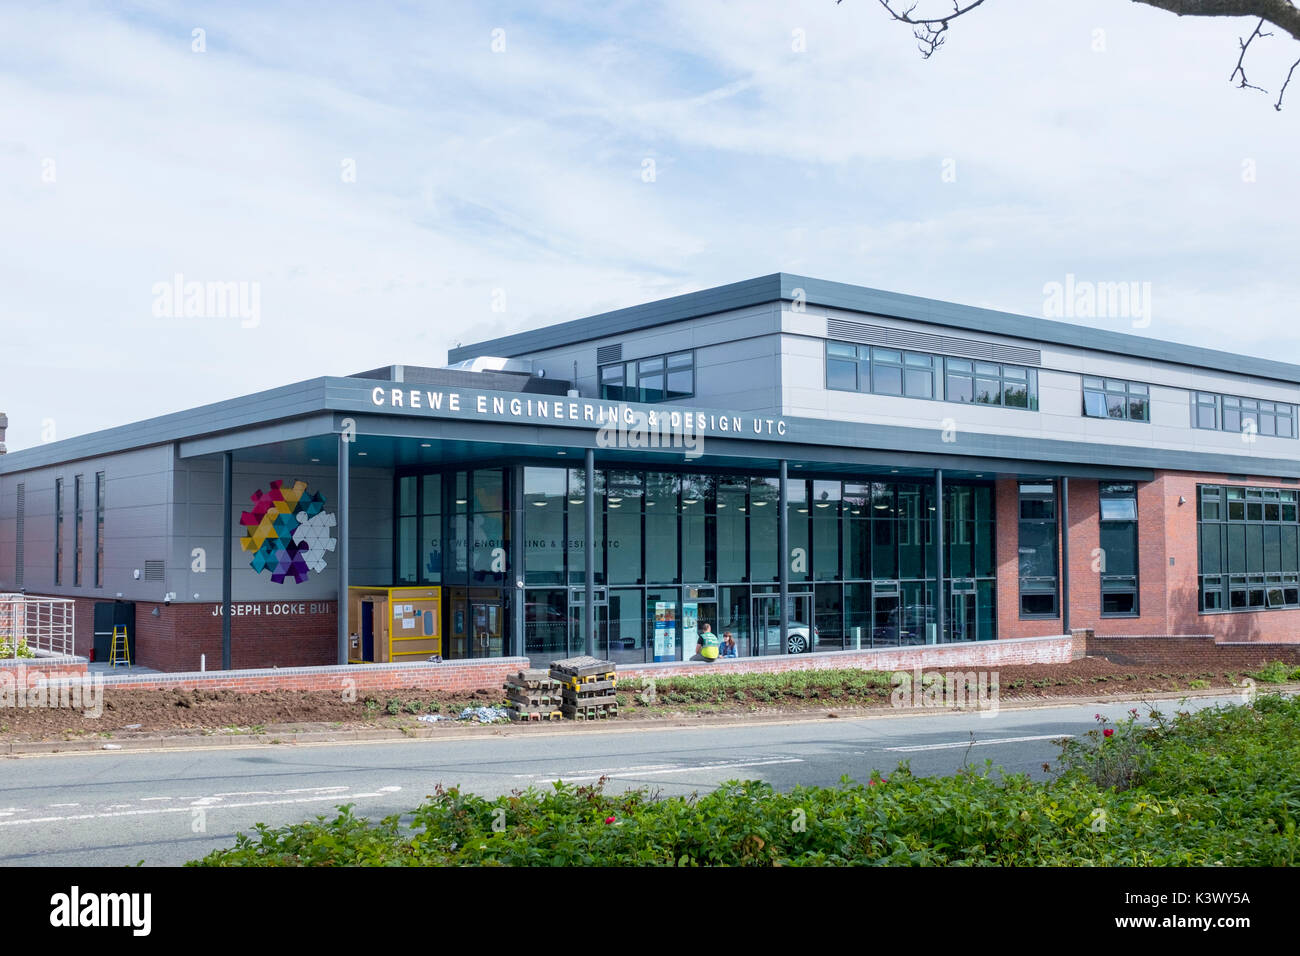 Crewe Engineering And Design Utc High Resolution Stock Photography And Images Alamy